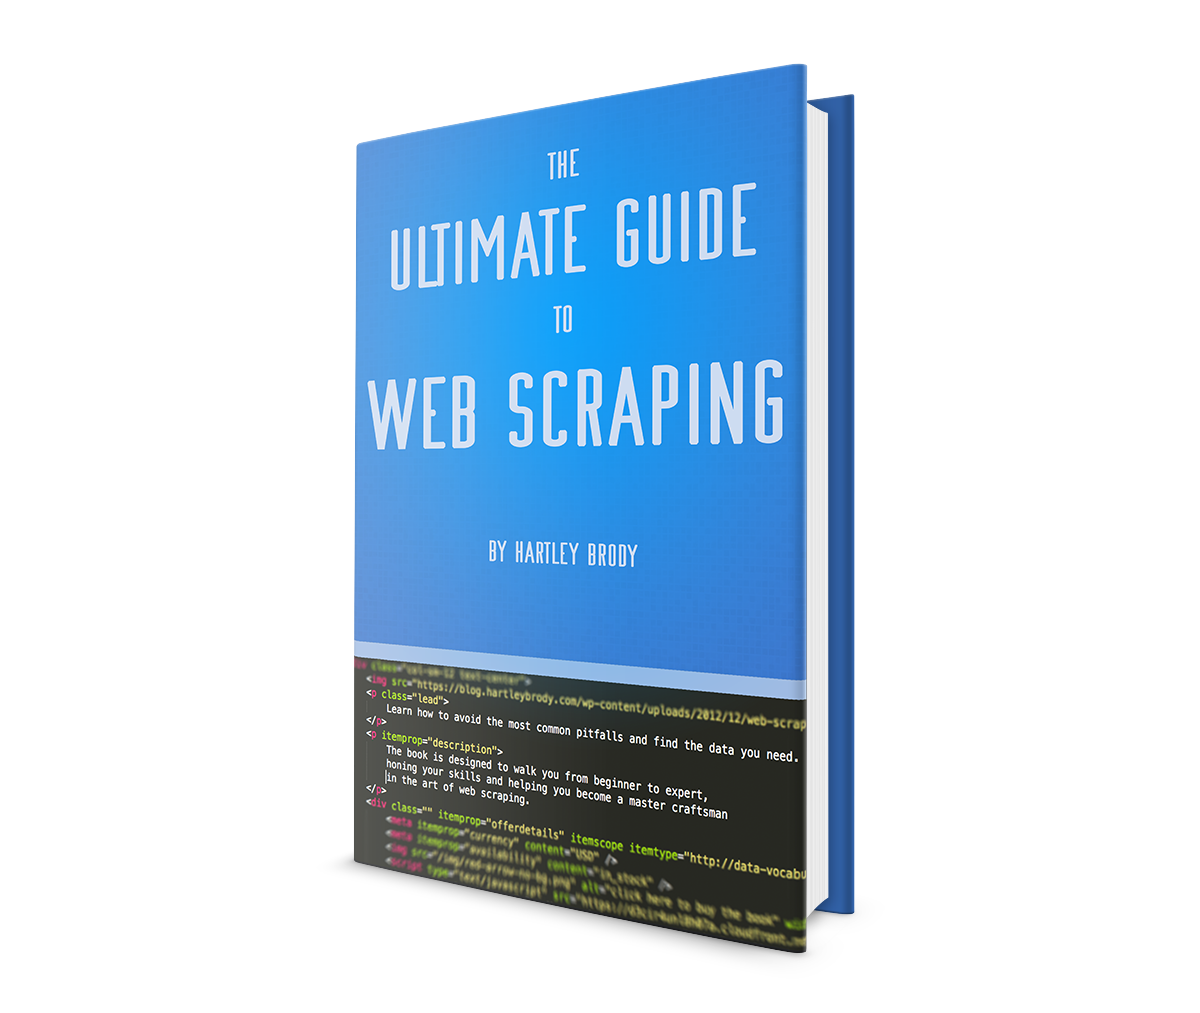 Web Scraping Reference: A Simple Cheat Sheet for Web